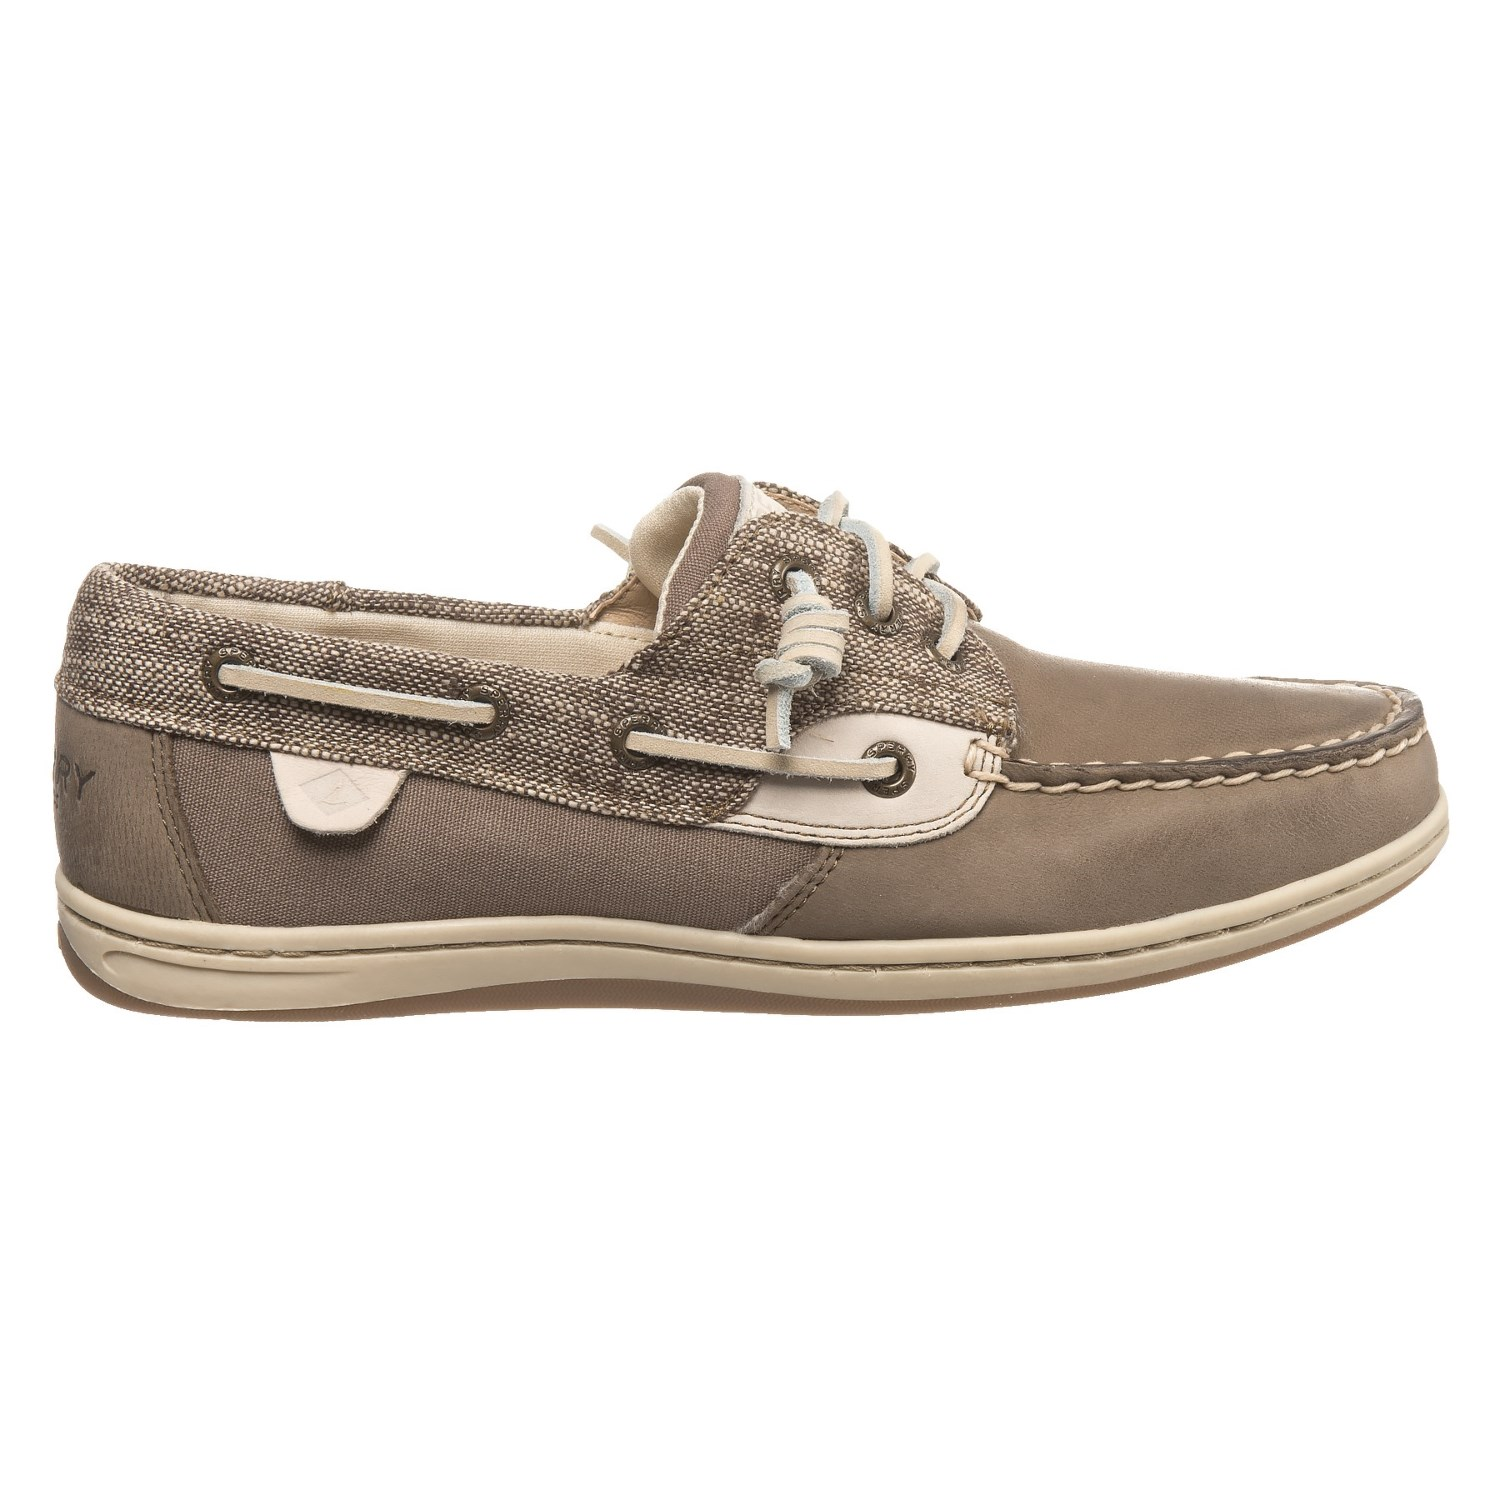 Sperry Songfish Boat Shoes For Women